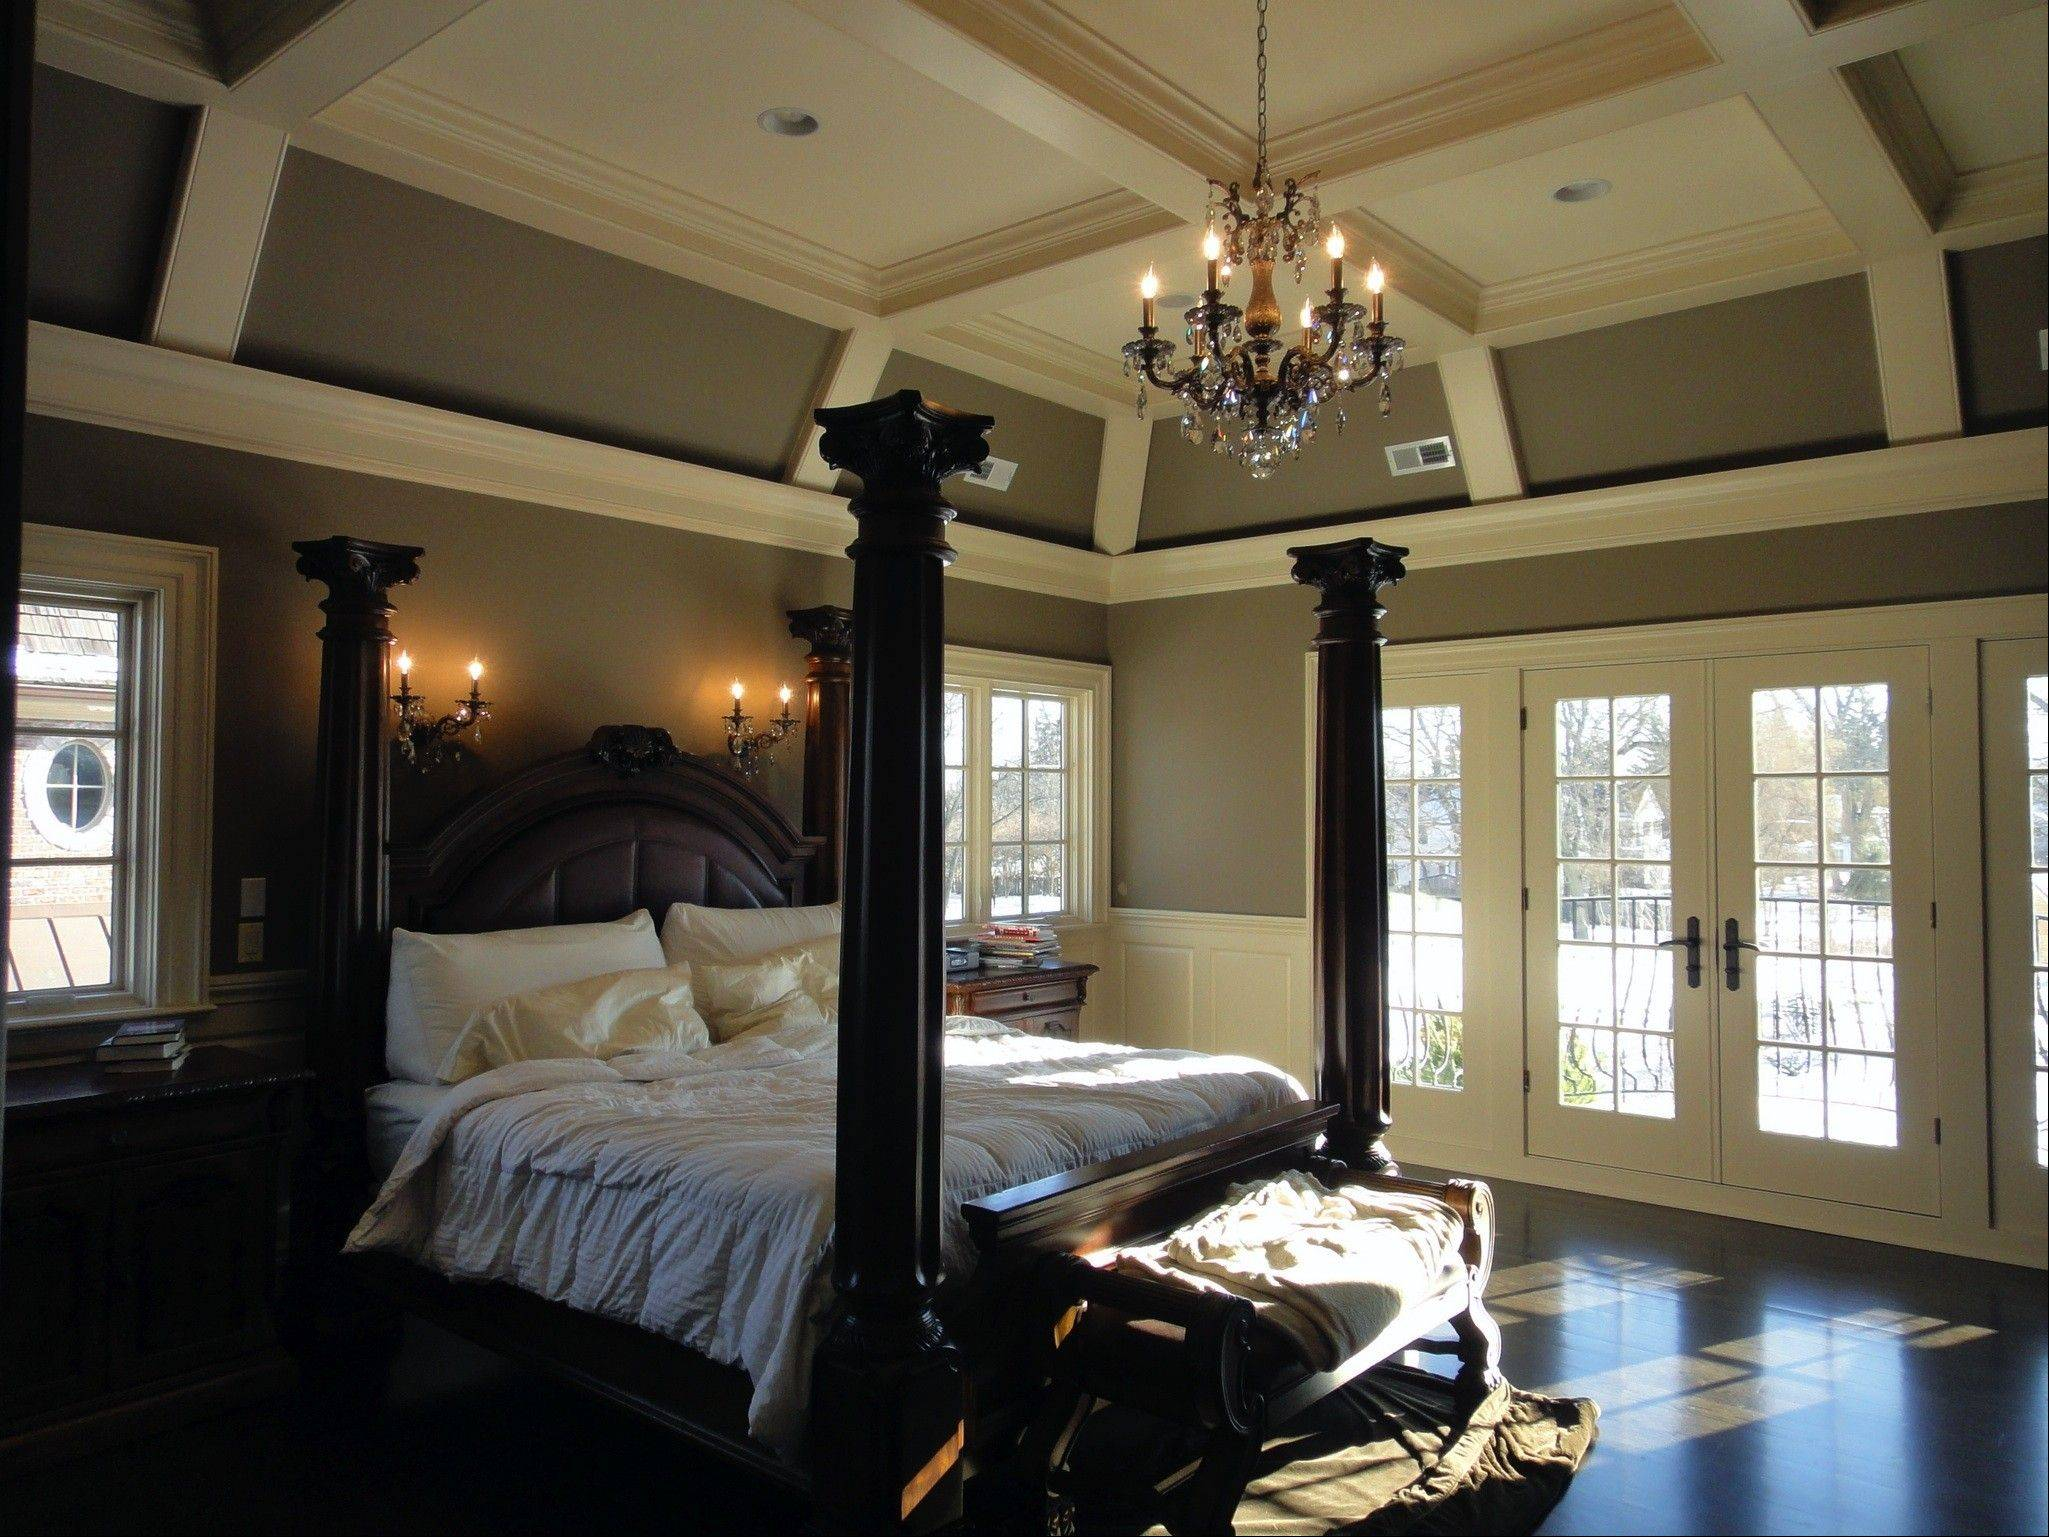 Pendant lights and wall sconces are popular lighting choices in remodeling projects.